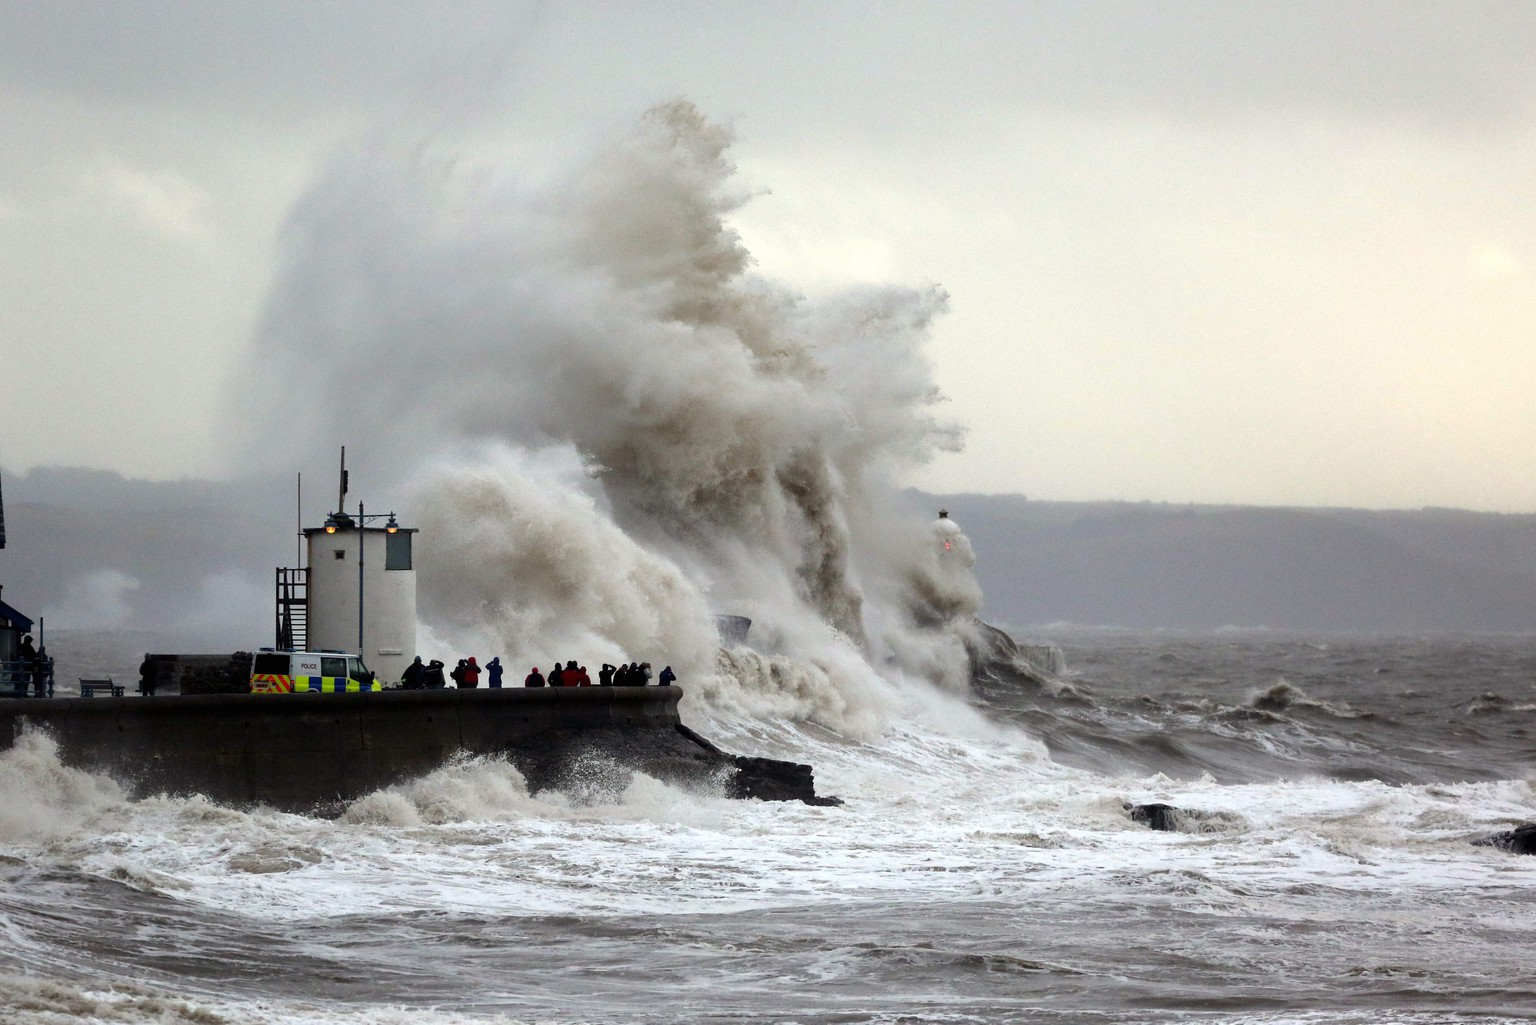 epa04055793 Wave-watchers gather on the quayside as storm-driven waves crash against the lighthouse wall in the coastal resort of Porthcawl, south Wales, United Kingdom 5 February 2014. Atlantic storms continue to battle the south west british coastline causing fresh  travel chaos, cutting power and causing more flooding  EPA/DMITRIS LEGAKIS